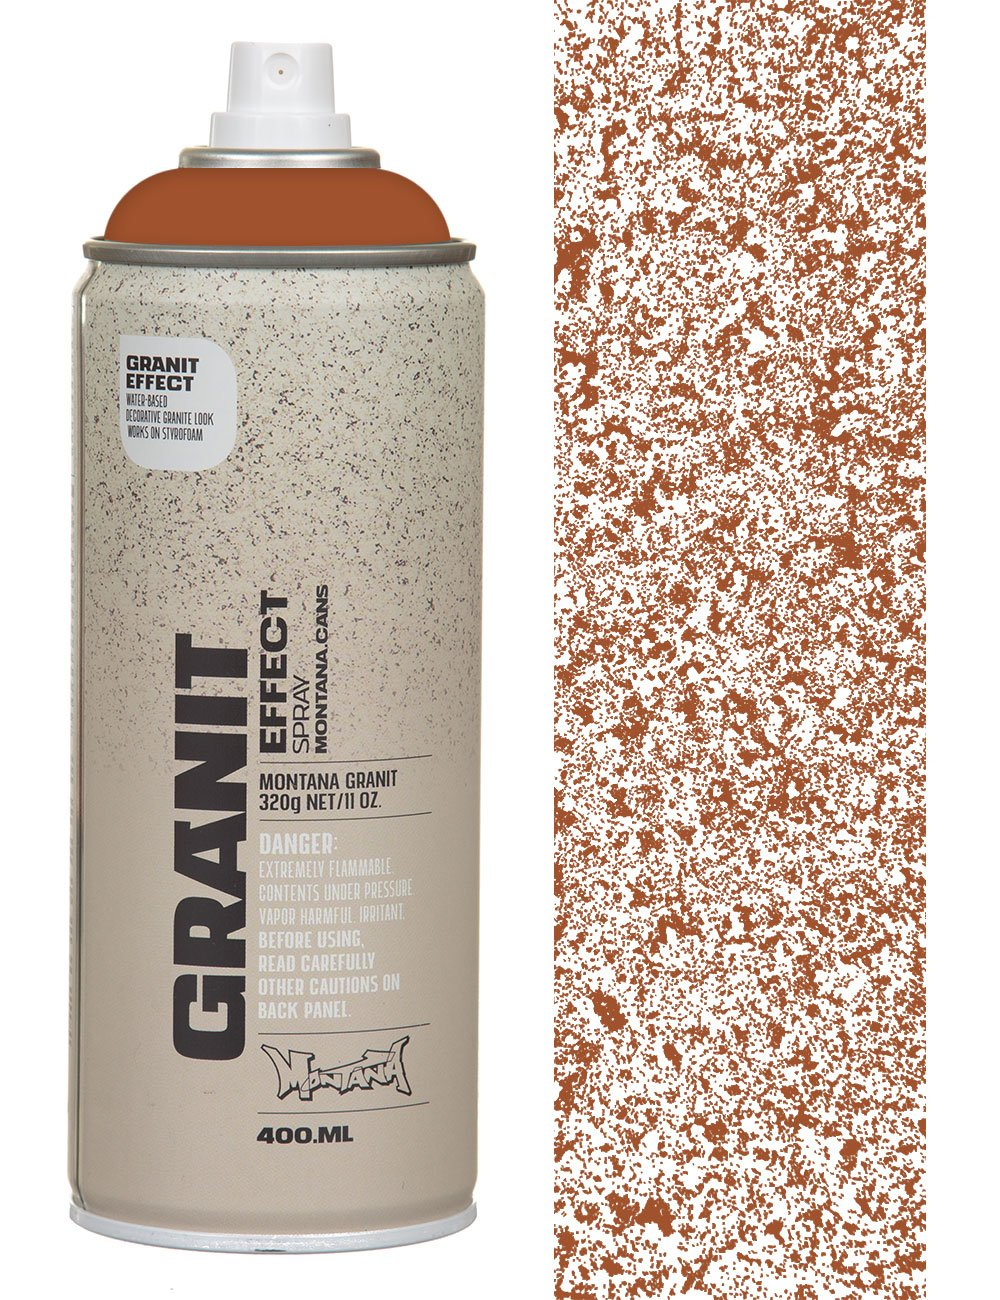 Montana Gold Brown Granite Effect Spray Paint 400ml Spray Paint Supplies From Iconsume Uk